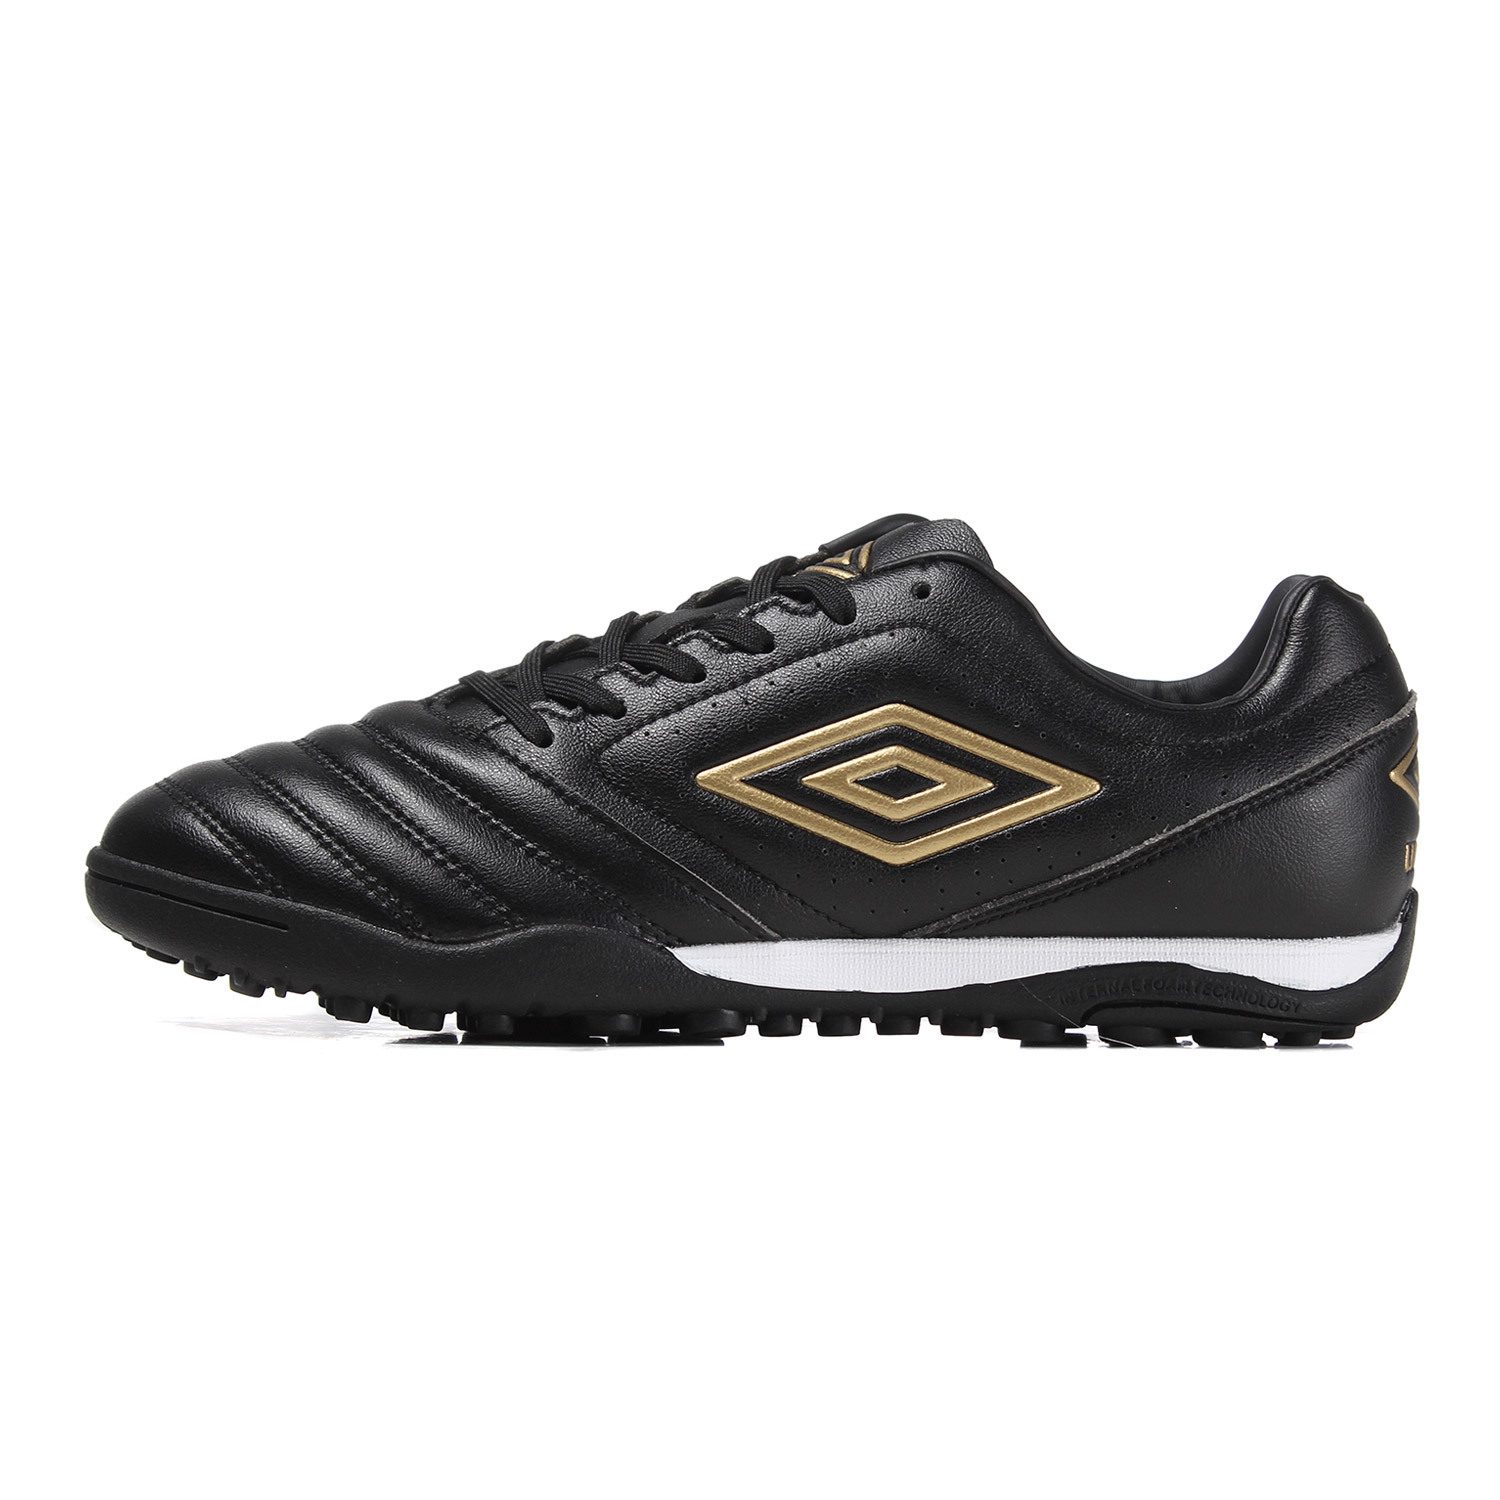 Umbro Rubber Soles Turf Soccer Shoes For Men Breathable Antiskid Race Training Shoes For Soccer Sneakers Men Ucb90145 umbro football shoes men breathable rubber antiskid hg professional competition training football boots soccer shoes ucb90129